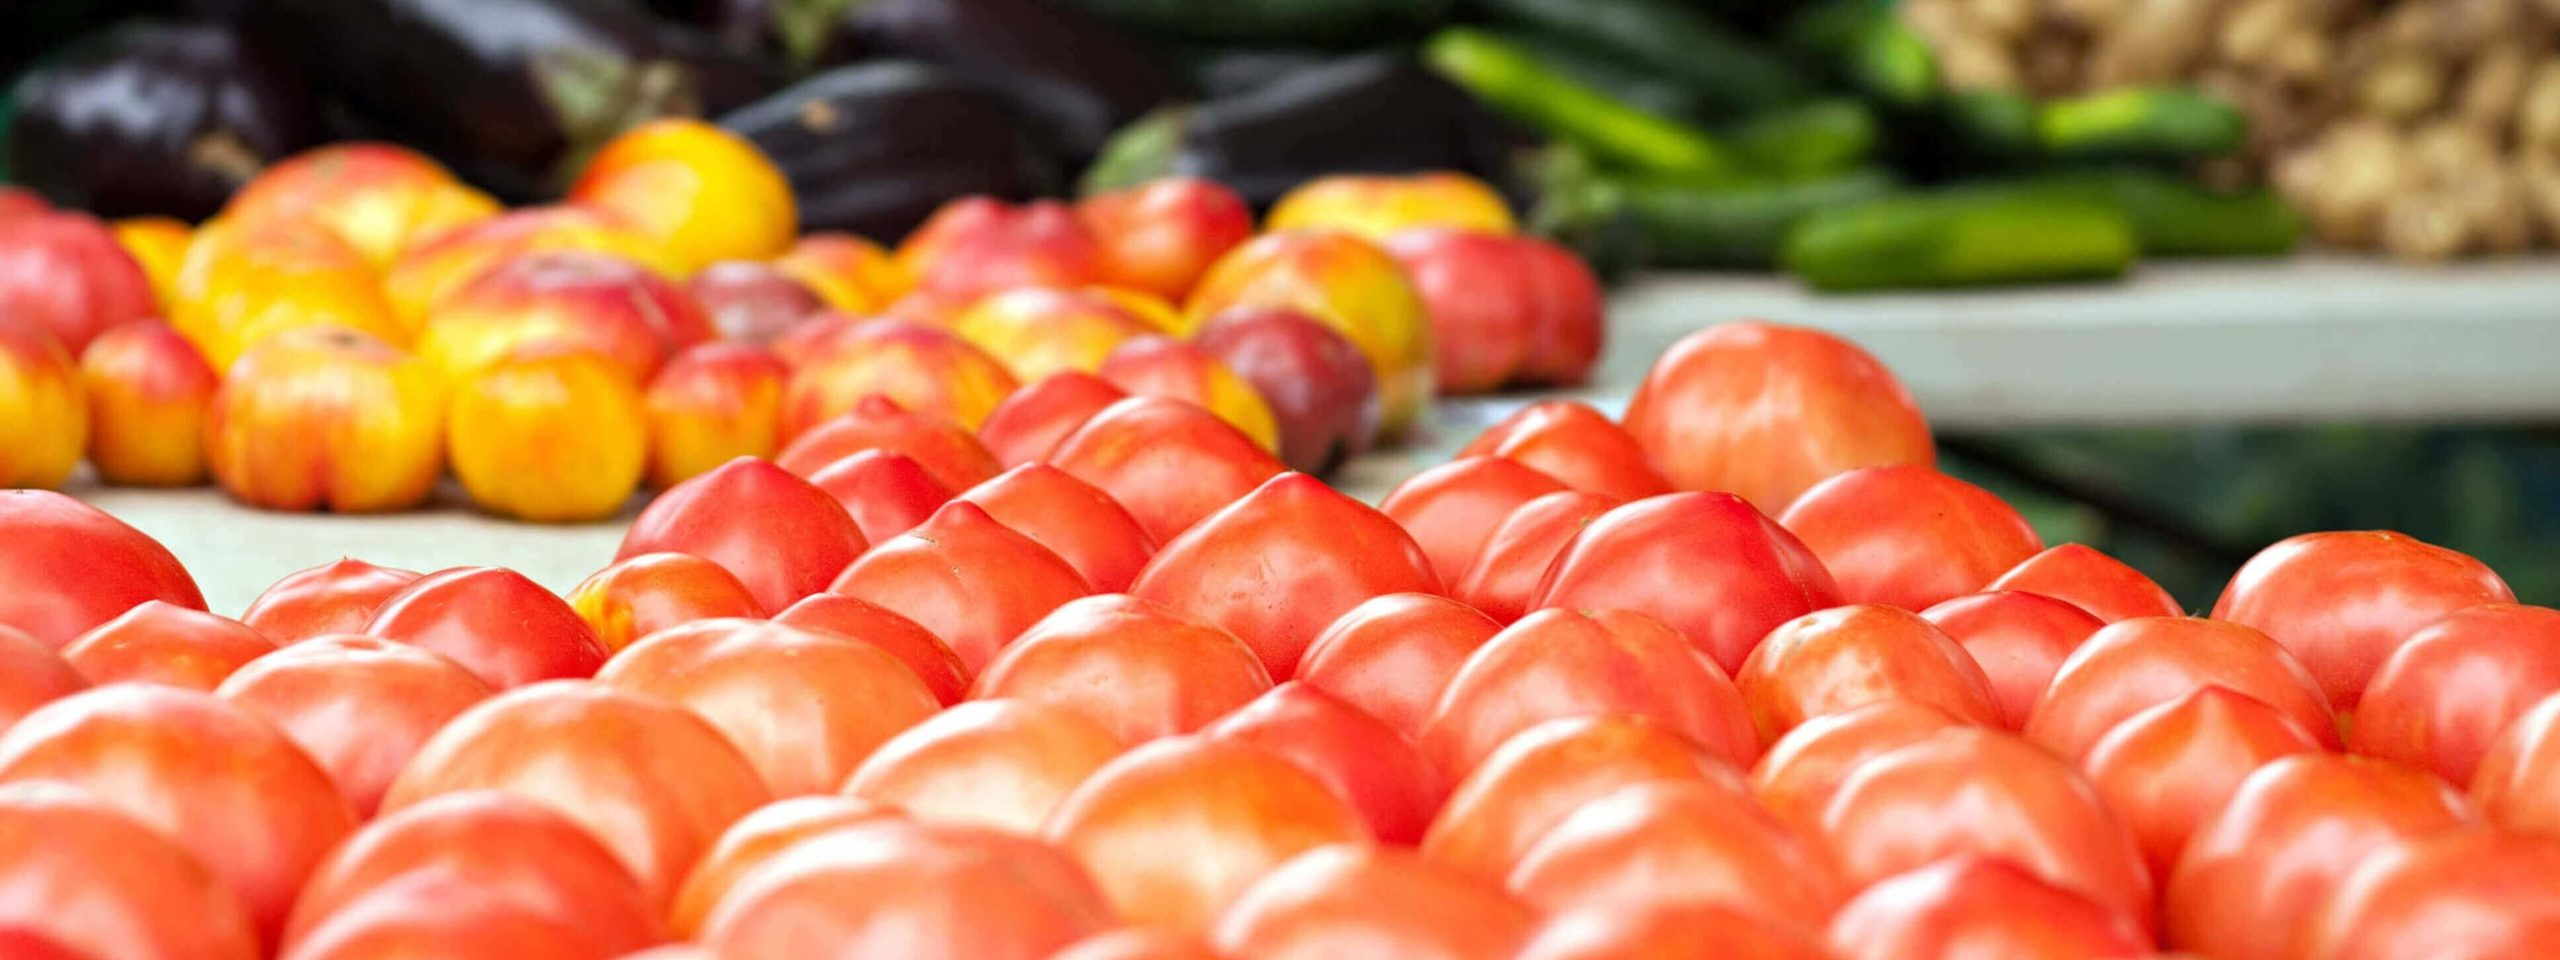 Excess Summer Garden Harvest Can Now Be Donated to Local Food Pantries